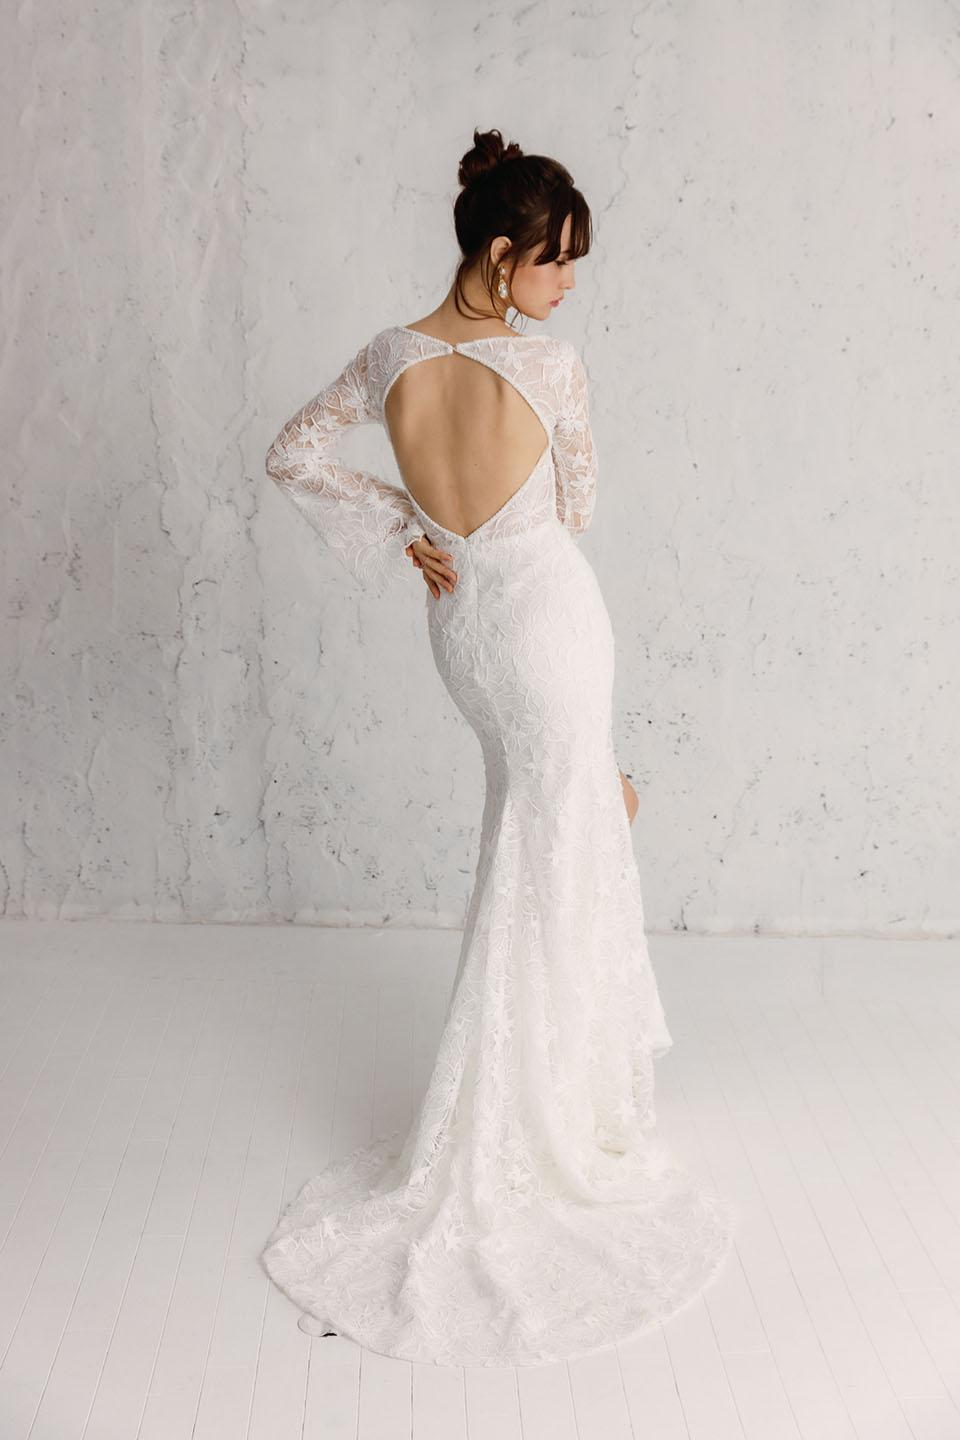 Shiloh Wedding Dress